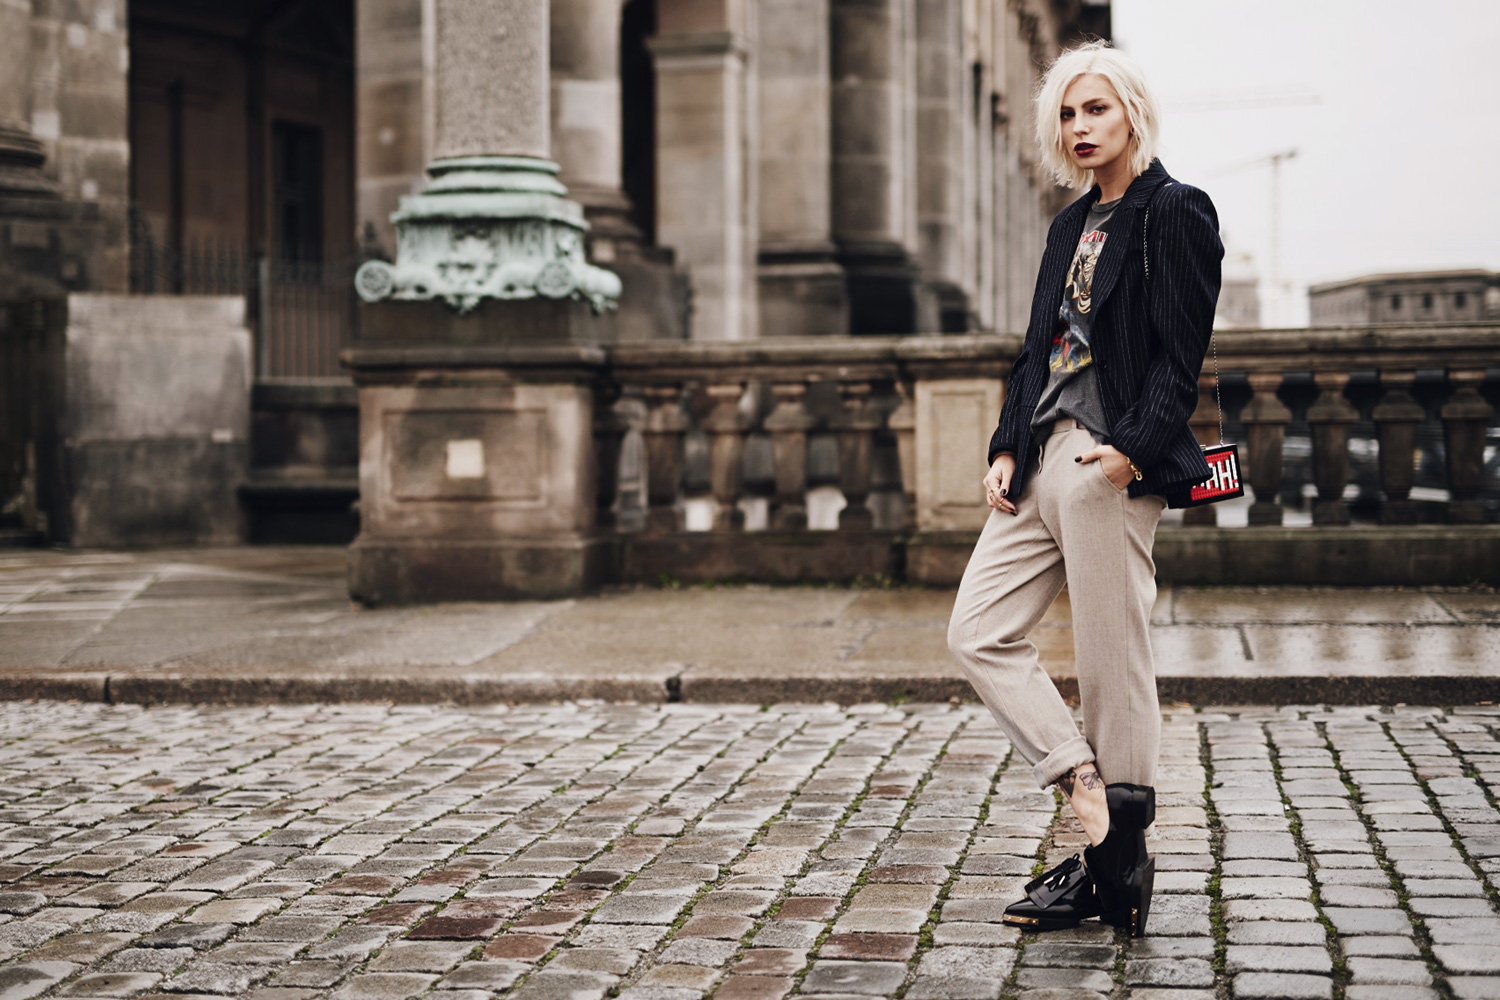 view more details on my blog | wearing an Iron Maiden band shirt with a blazer and loafers | mixing edgy, grunge and classy | street style, fashion, outfit